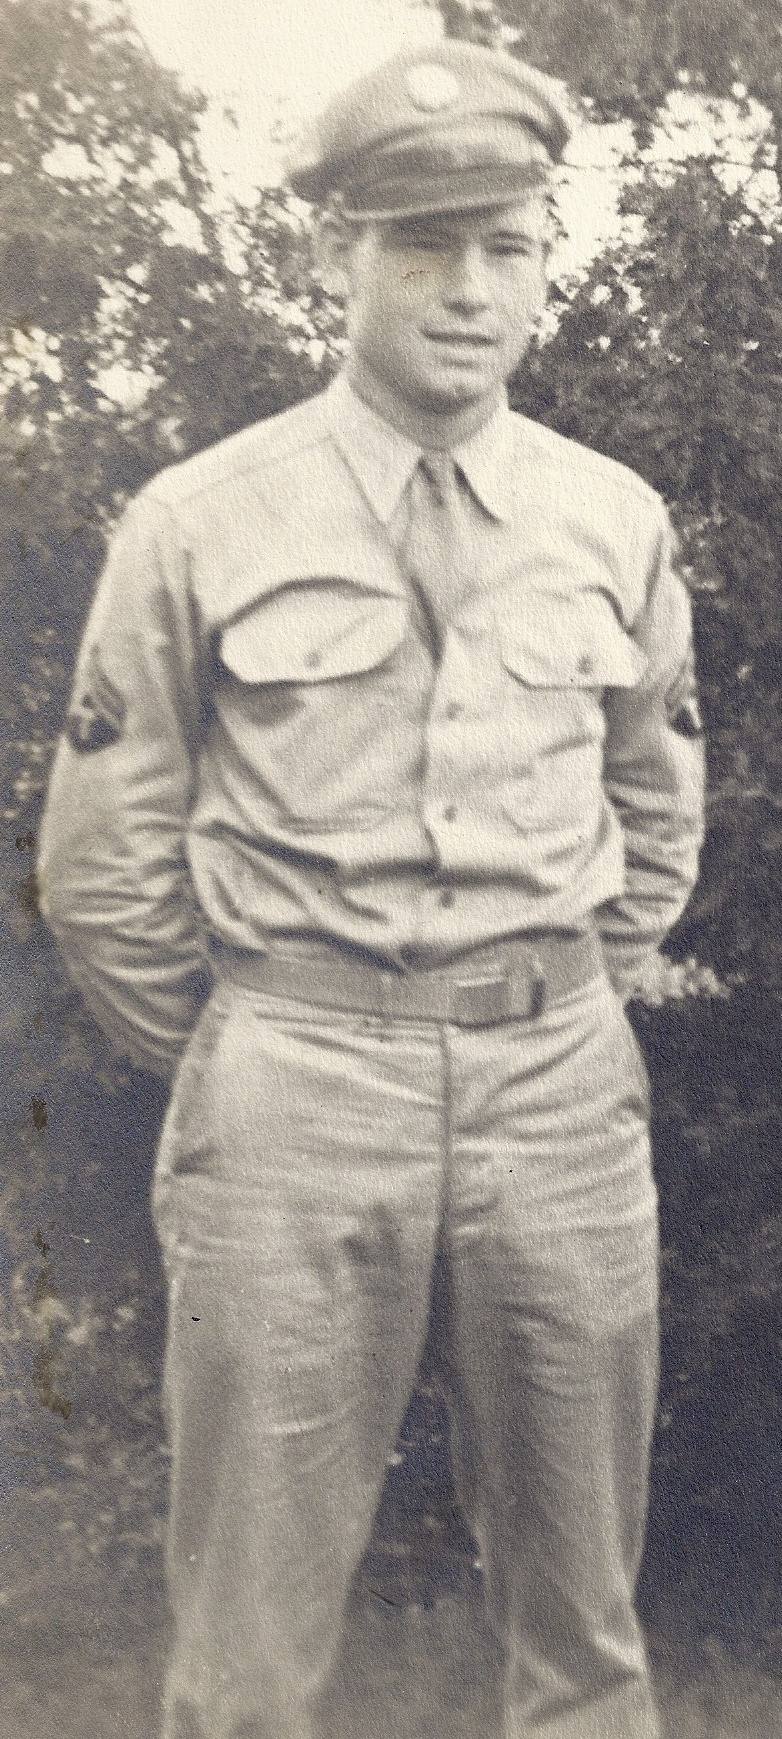 T/5 Robert Kreis (BOB) - Please describe who or what influenced your decision to join the Army.